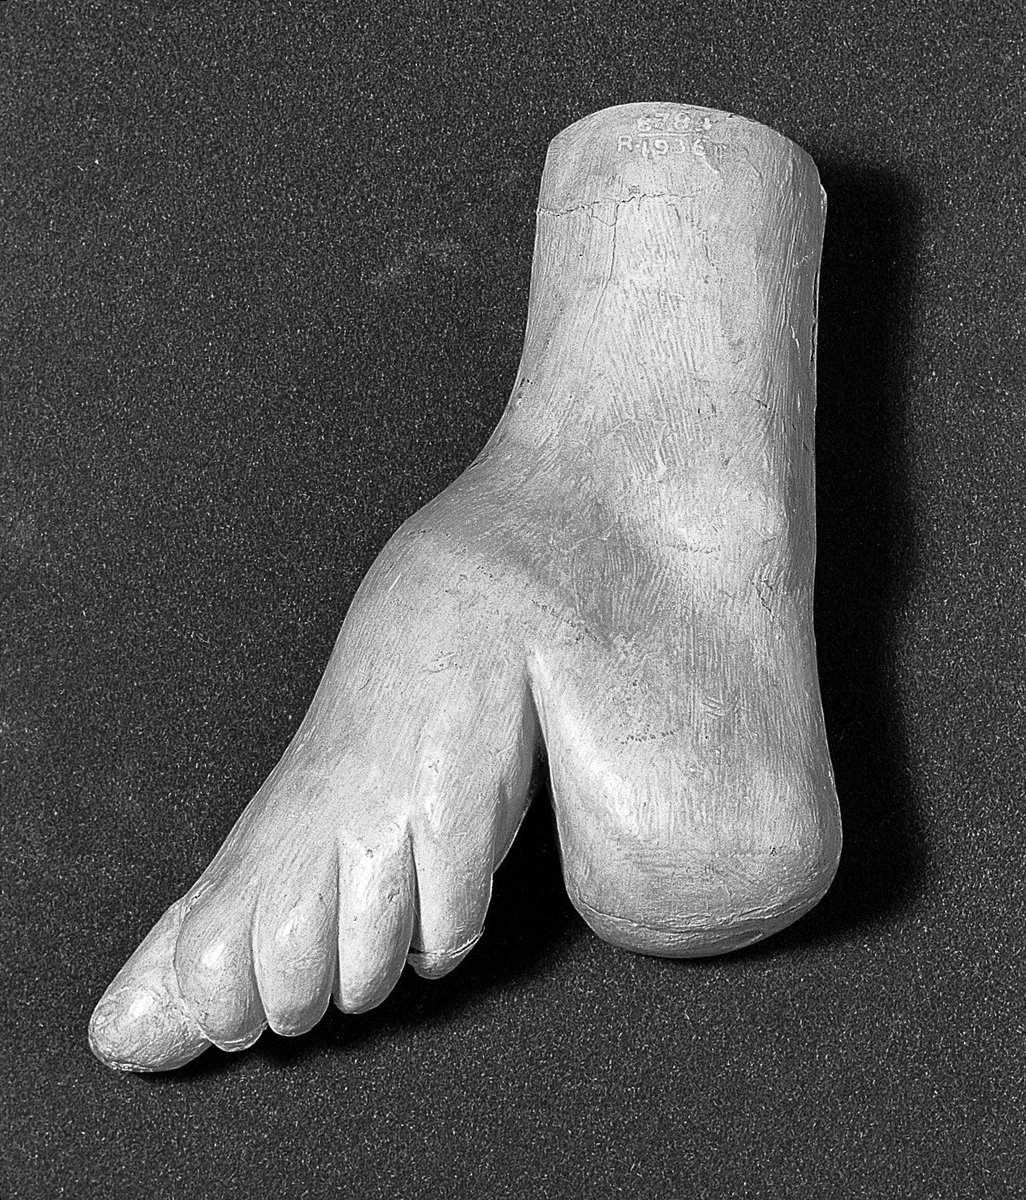 Lonely Wanderer On Twitter High Sort Of People In Ancient China Maybe Japanese Too But Not Sure At The Time The Ankle And Small Feet Were Considered As Most Attractive Erotic